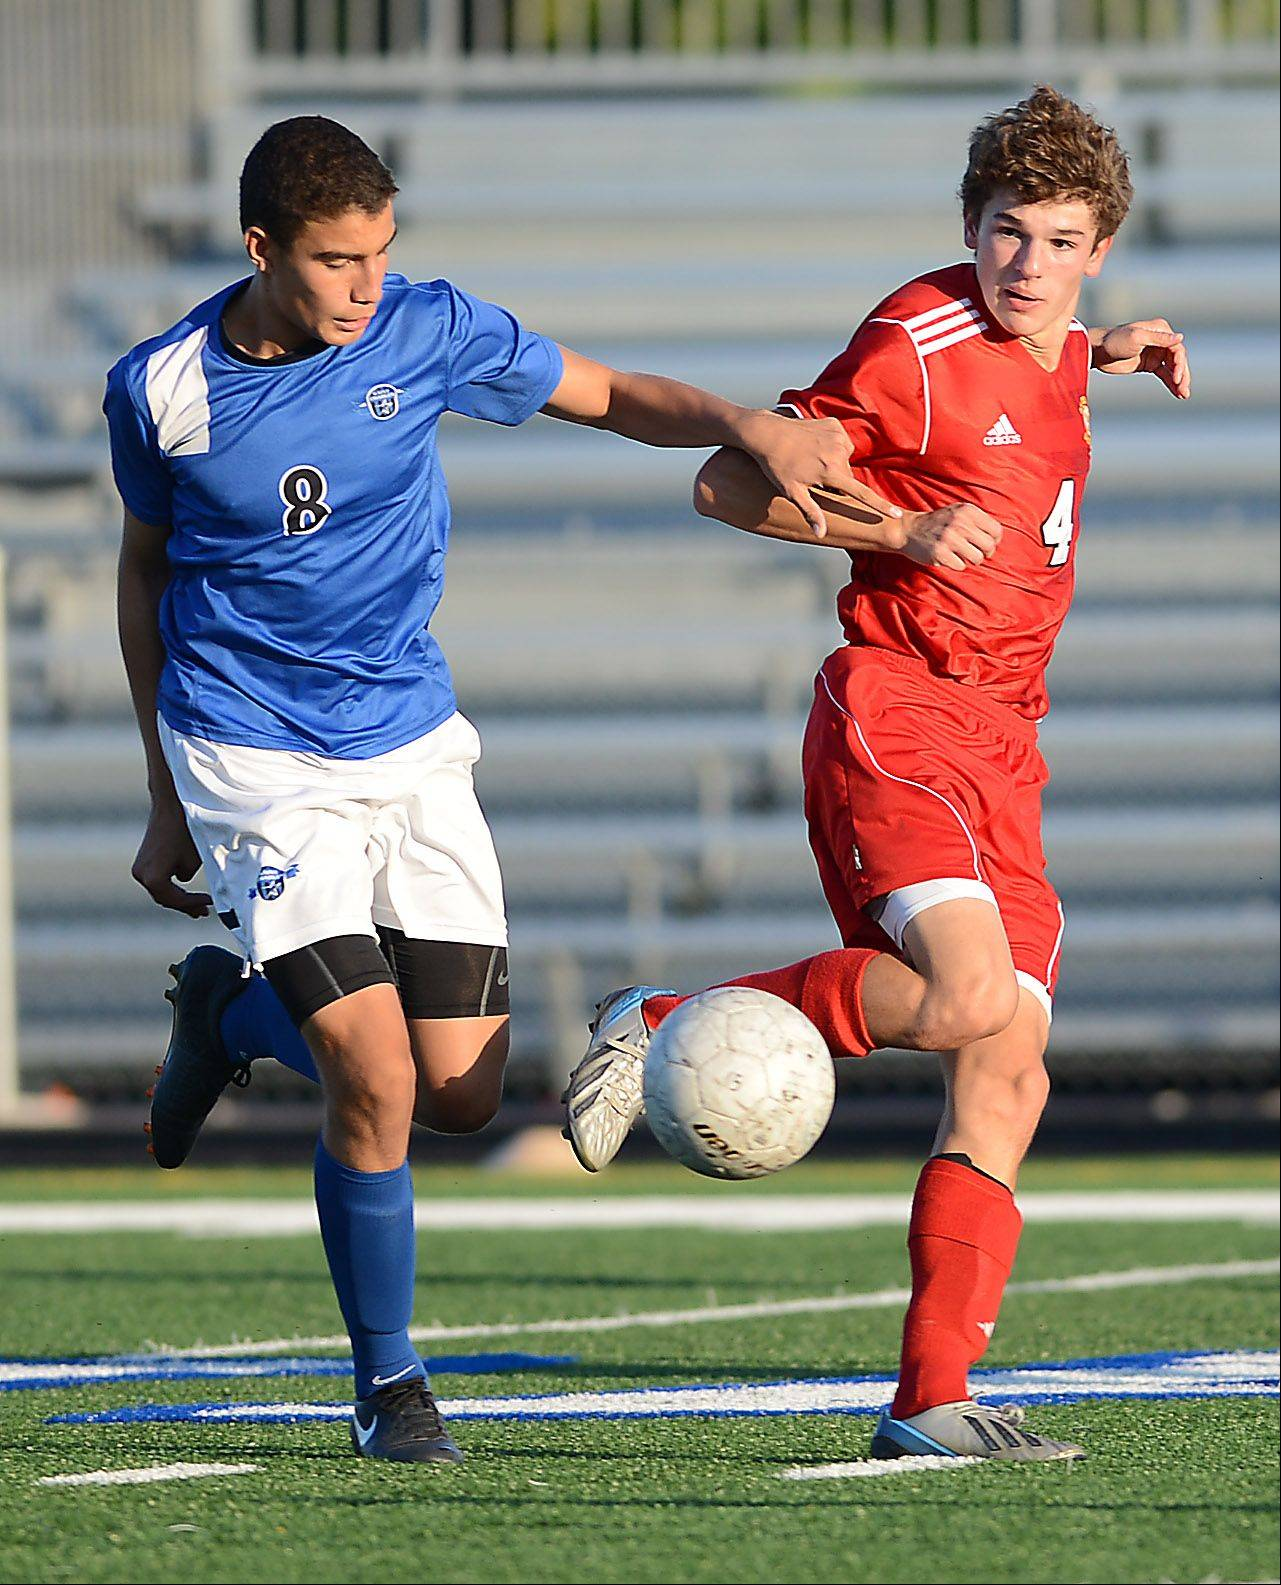 St. Charles North's Lorenzo Estrada and Batavia's Nathan Carey battle for the ball during Tuesday's action at the Tri-Cities boys soccer challenge in Geneva.